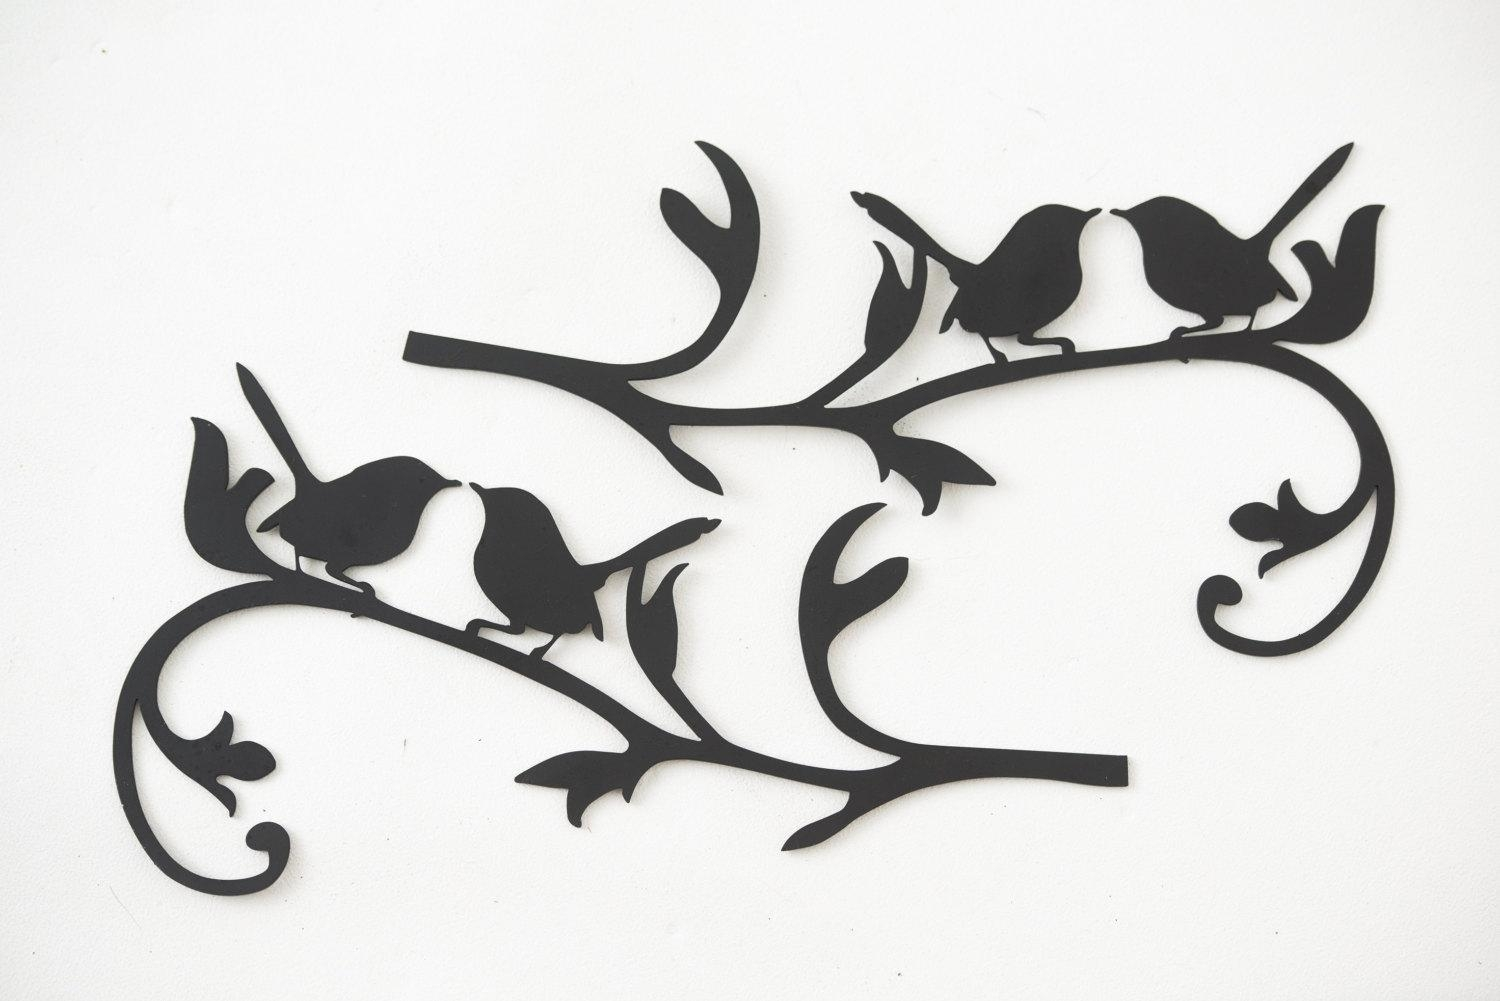 Wall Art Designs: Metal Bird Wall Art Flying Birds Wall Sculptures With Regard To Flock Of Birds Wall Art (Image 18 of 20)